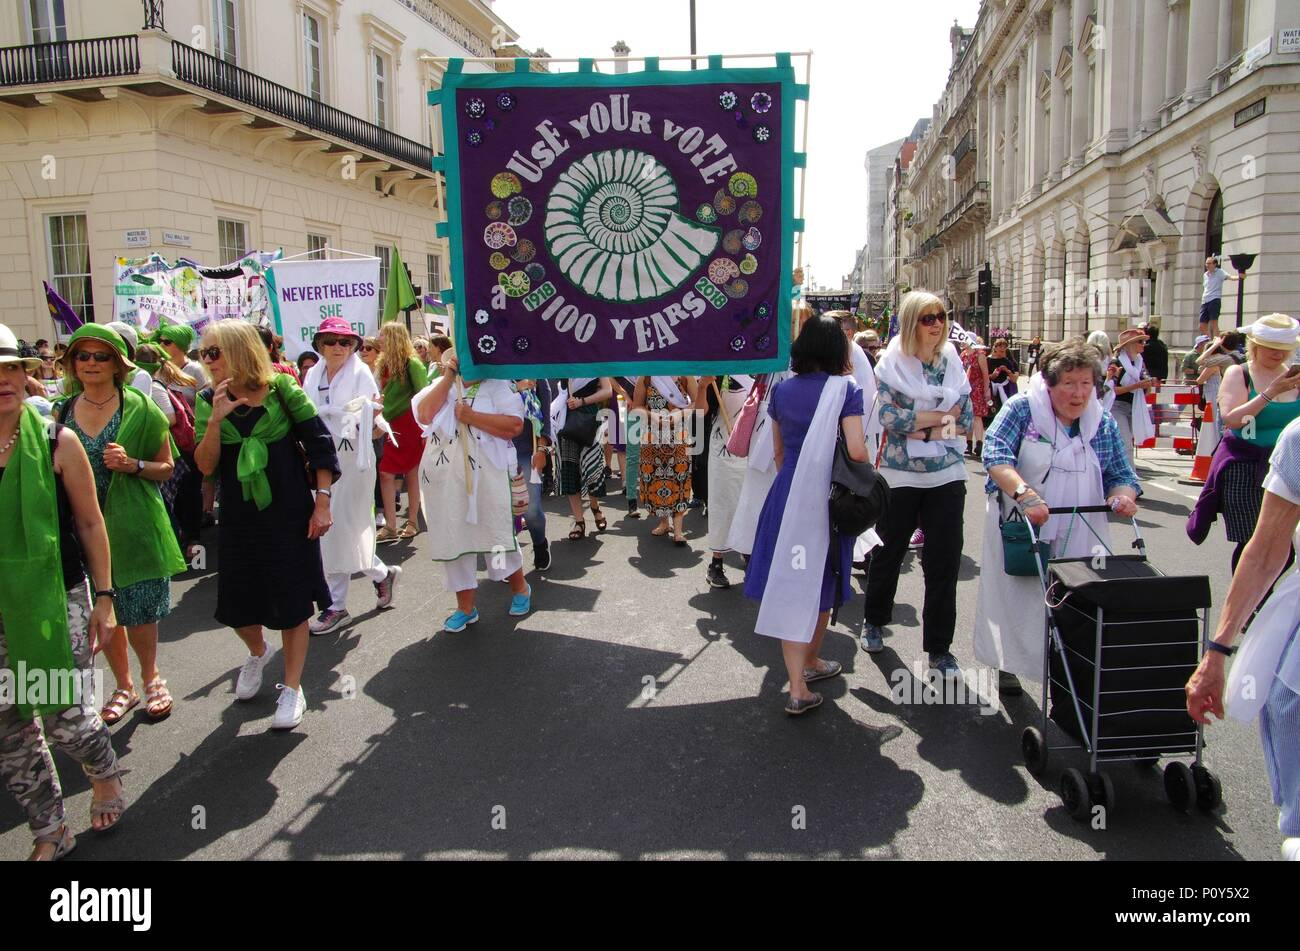 London, UK. 10th June 2018. Processions June 10 2018 a celebration of 100 years of Women getting the vote, march through London organised by the Artichoke Trust. Credit: Haydn Wheeler/Alamy Live NewsStock Photo